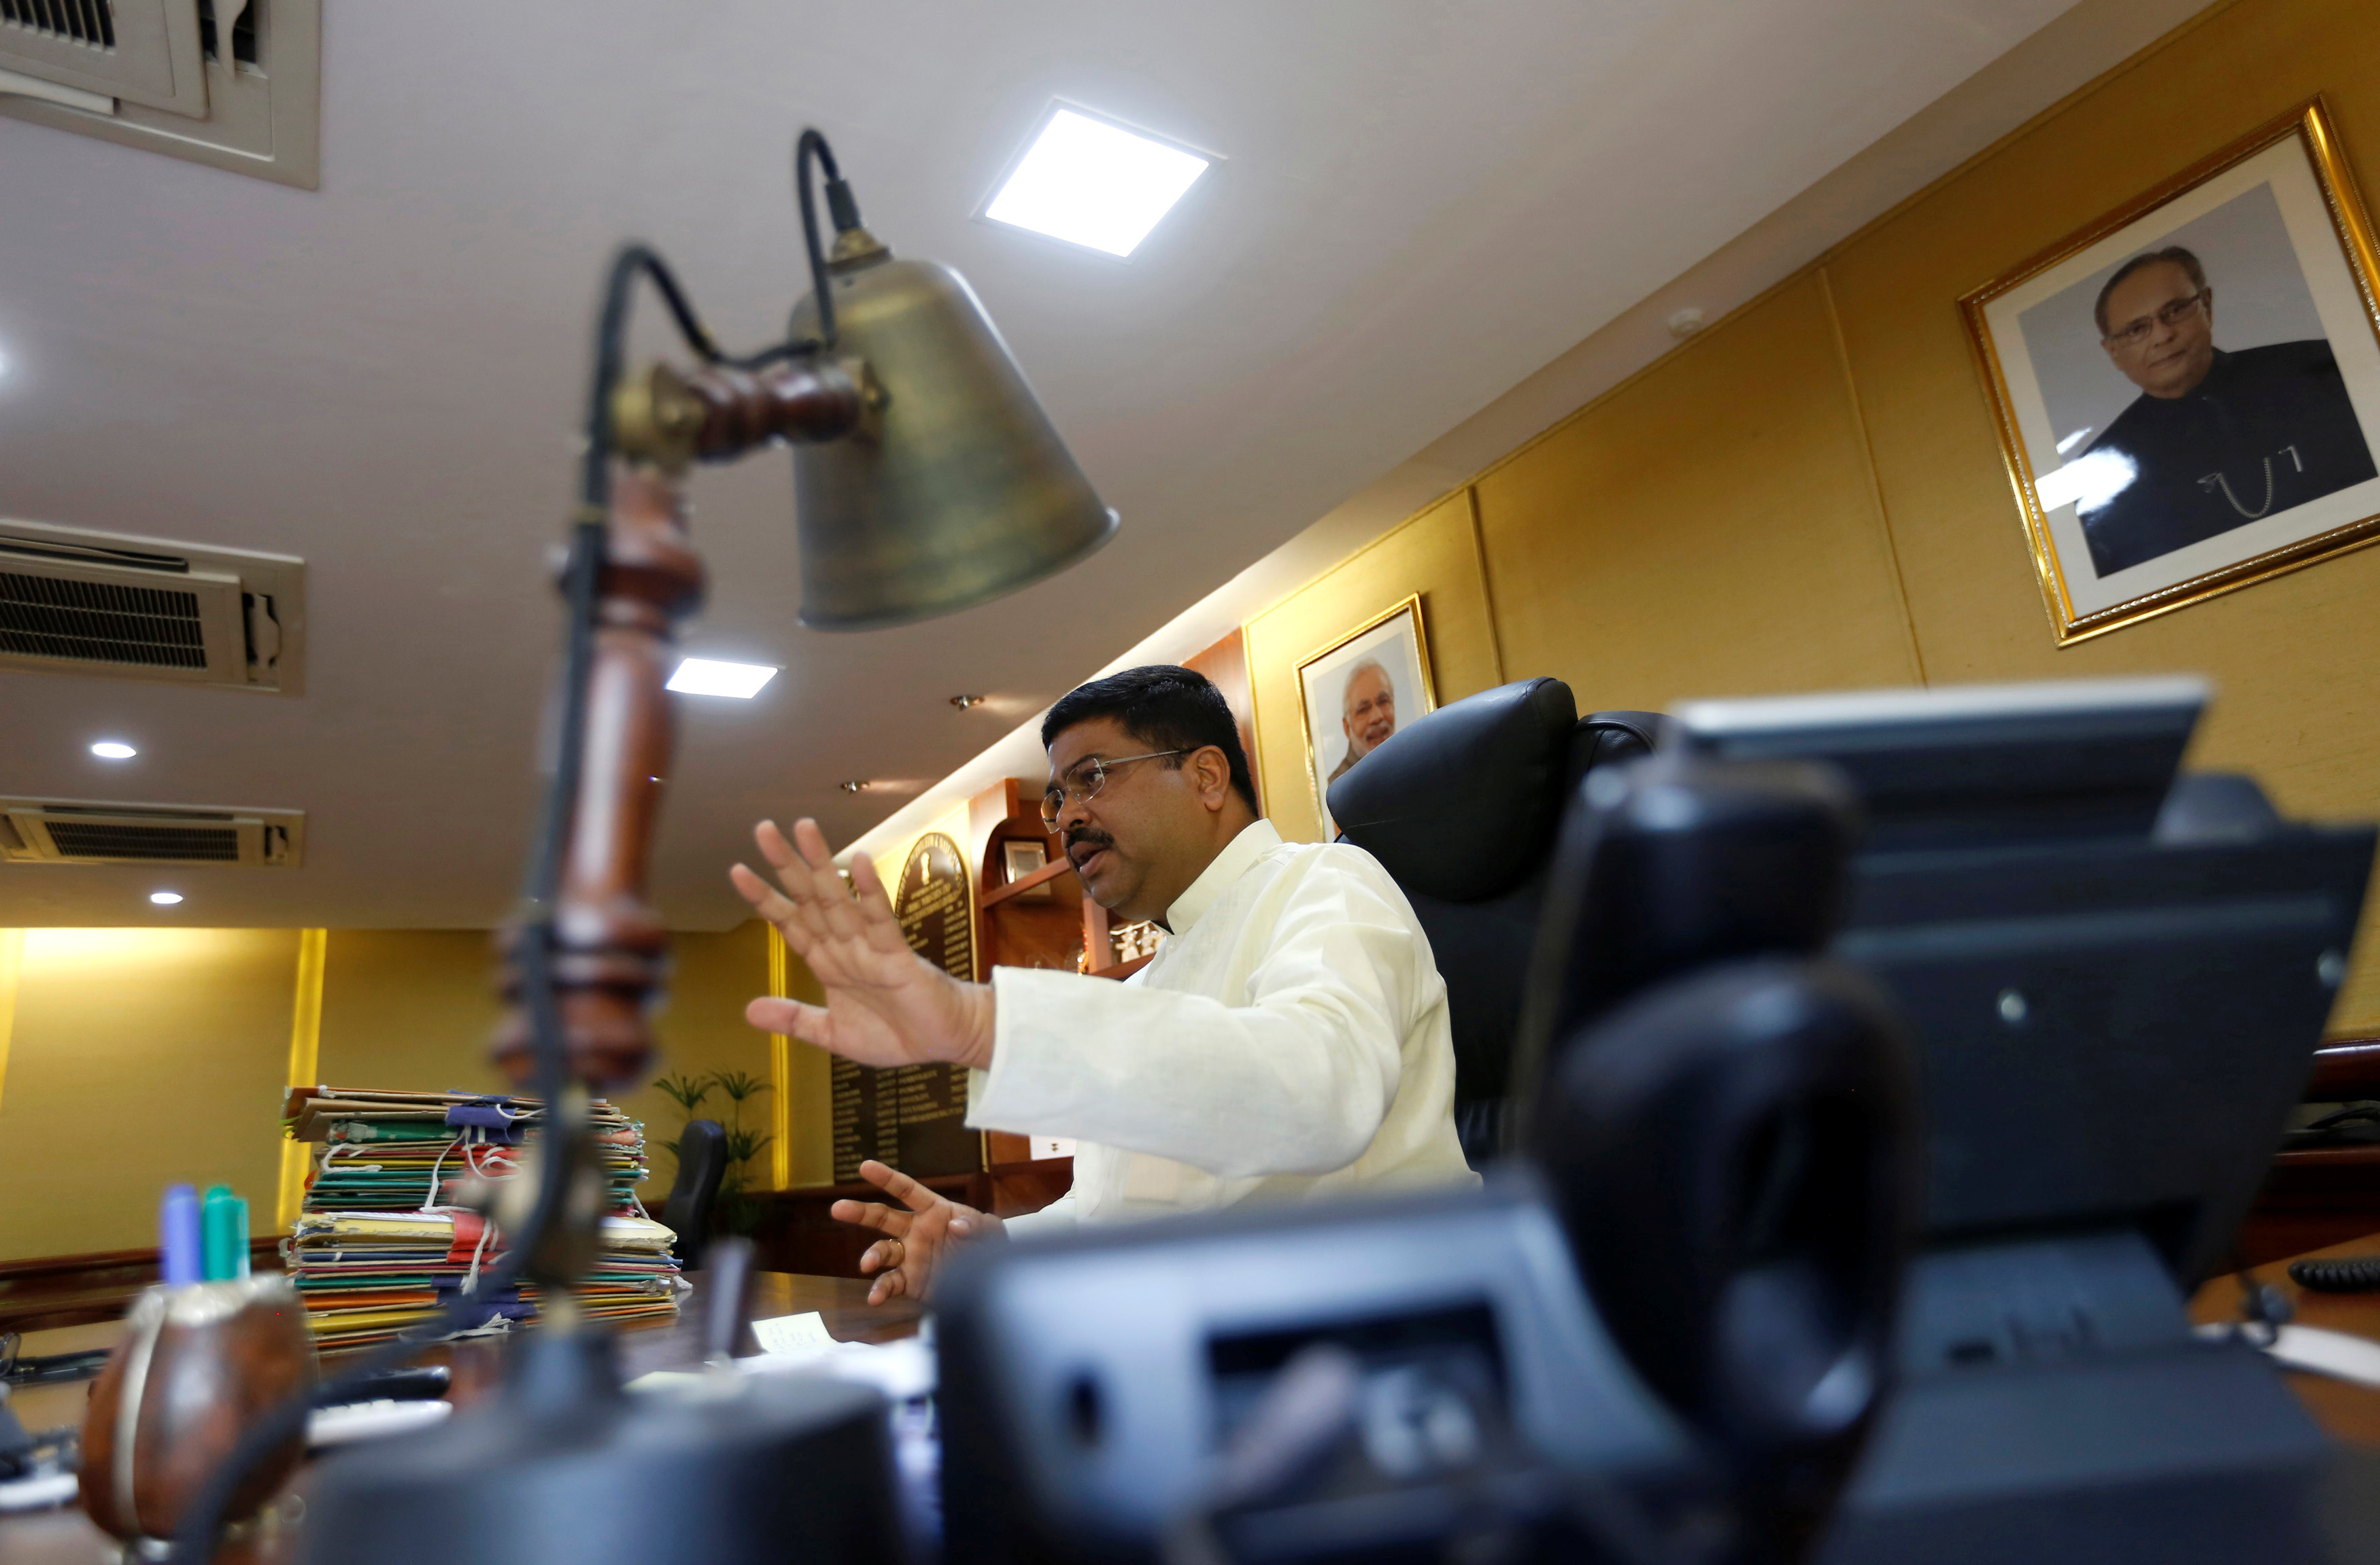 India's Oil Minister Dharmendra Pradhan speaks during an interview with Reuters in New Delhi, India, May 5, 2016. To match Interview INDIA-ENERGY/ REUTERS/Adnan Abidi